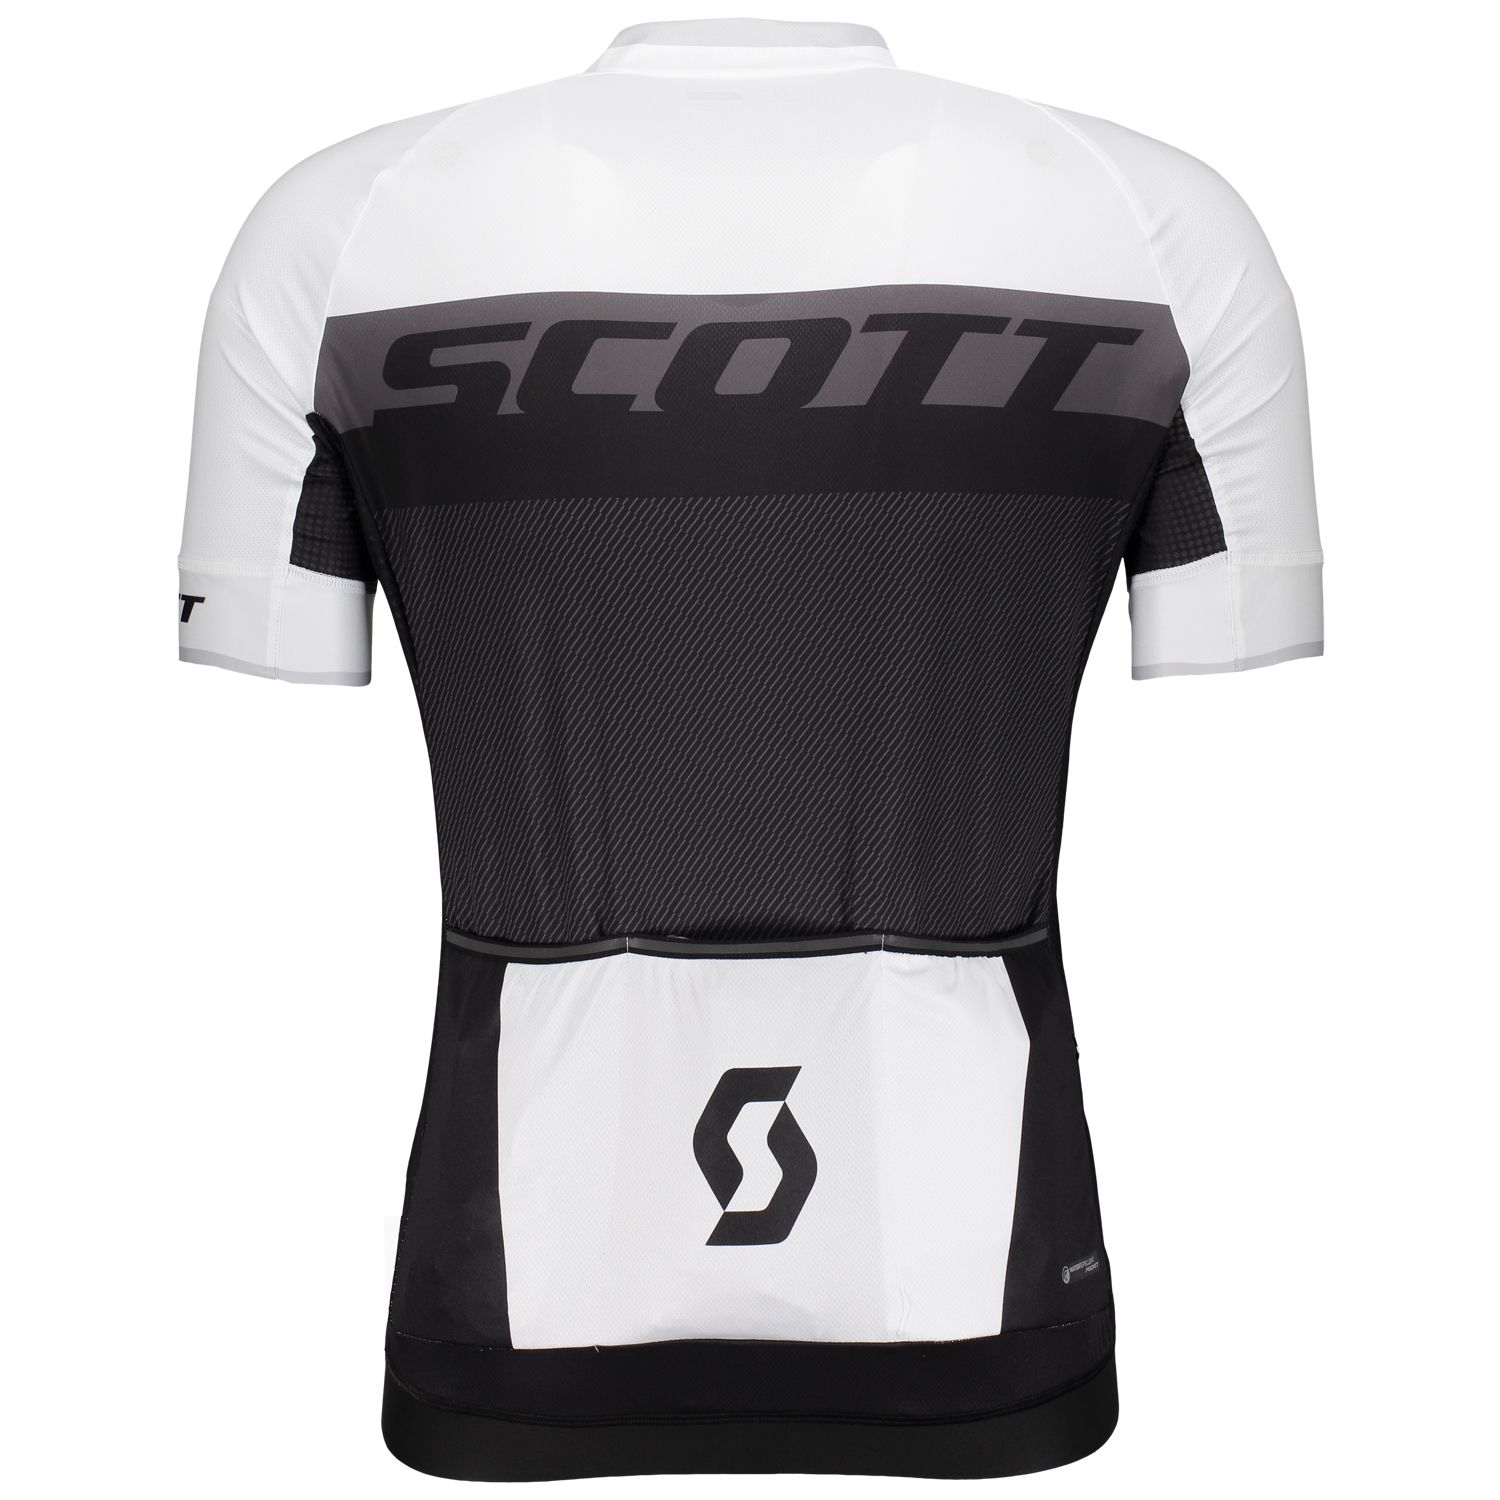 1247e4d31 ... short sleeve cycling jersey black white (264821). Next